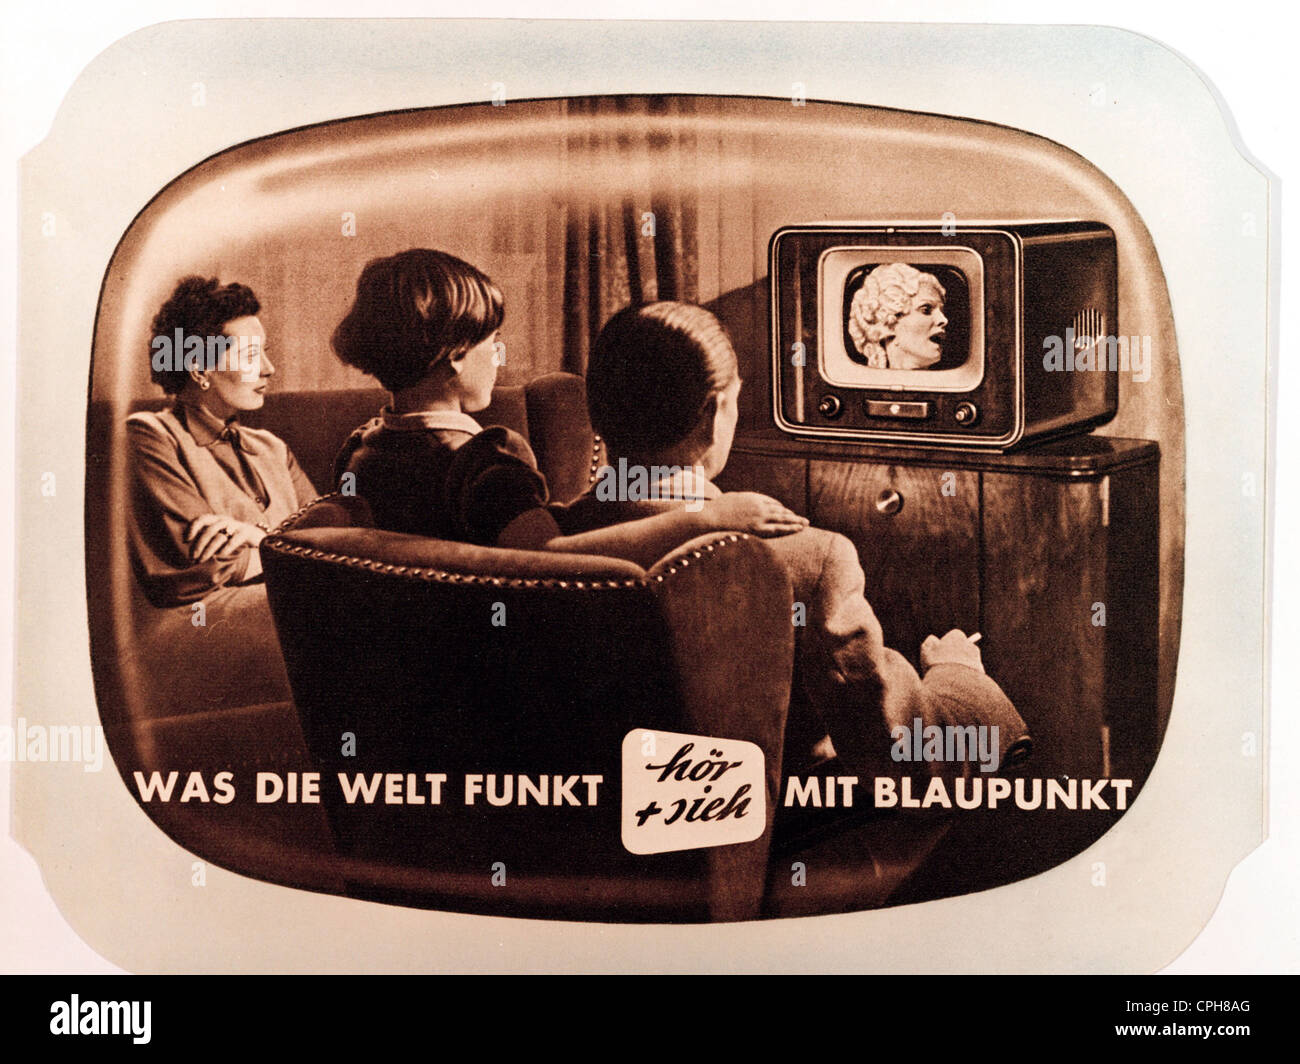 broadcast, television, family with television set by Blaupunkt, tabletop TV set V 53, one the first German postwar - Stock Image